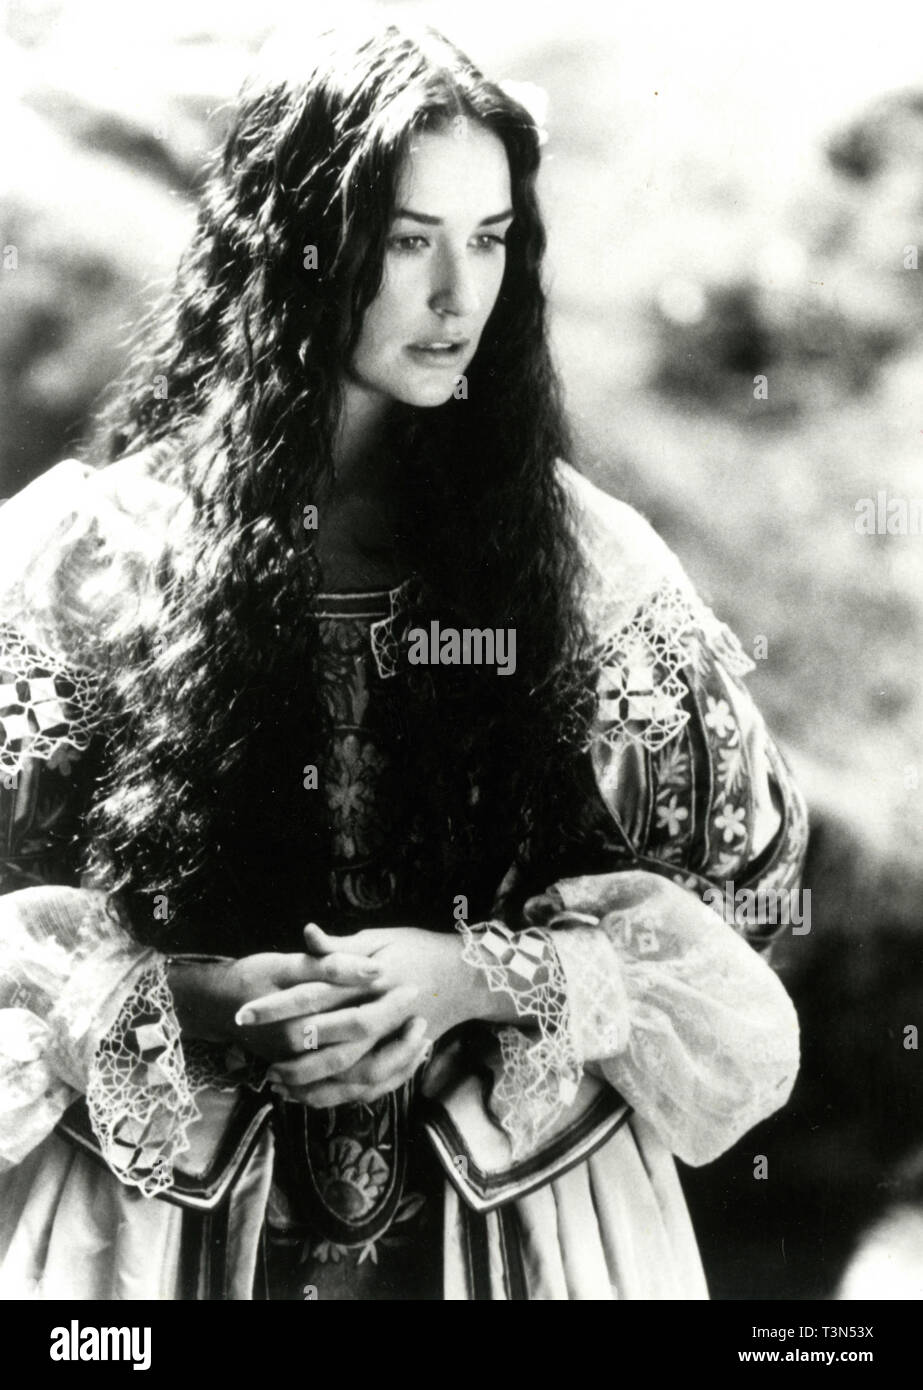 Actress Demi Moore In The Movie Scarlet Letter 1995